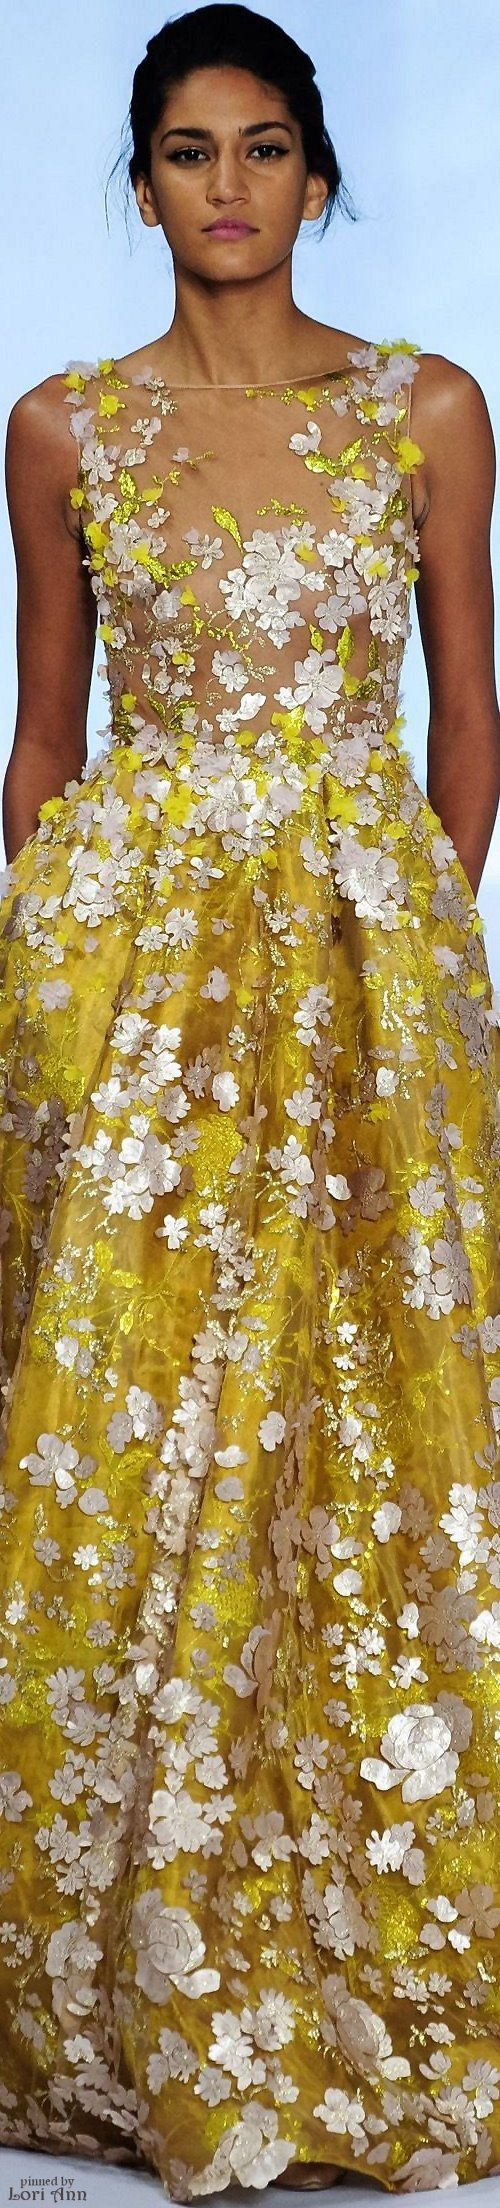 Ralph & Russo Couture Spring 2016. Exquisite garment- brings together delicacy, beauty, and the splendor of color.